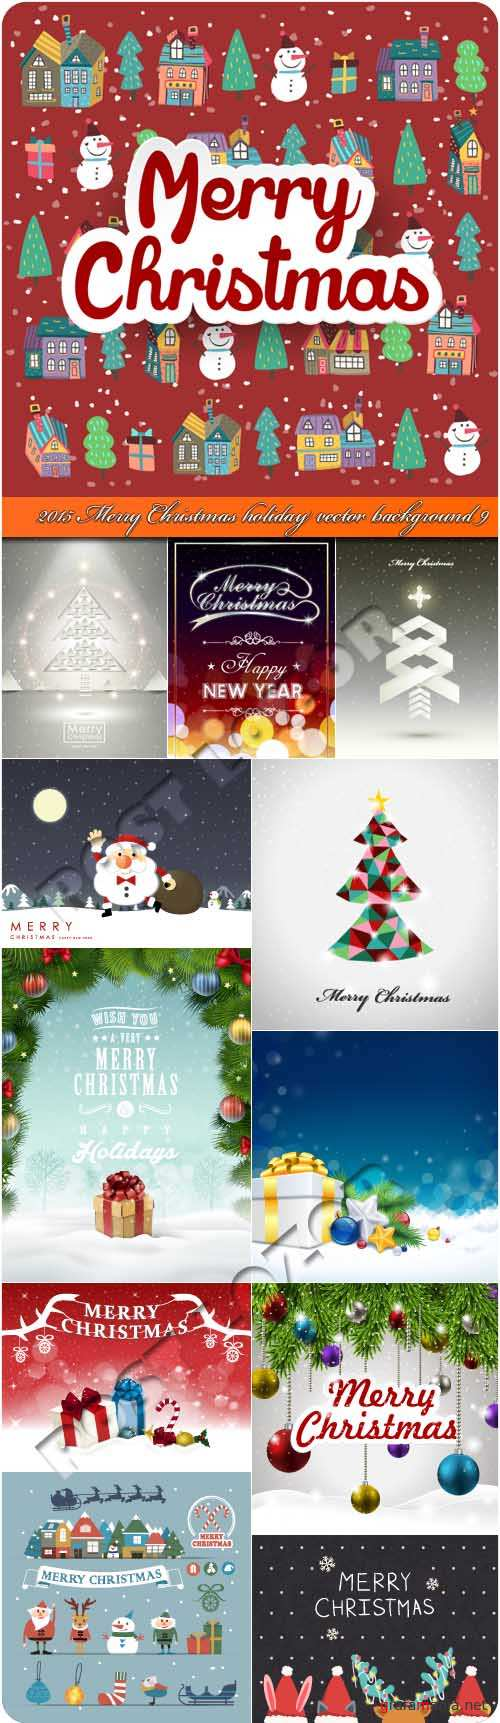 2015 Merry Christmas holiday vector background 9